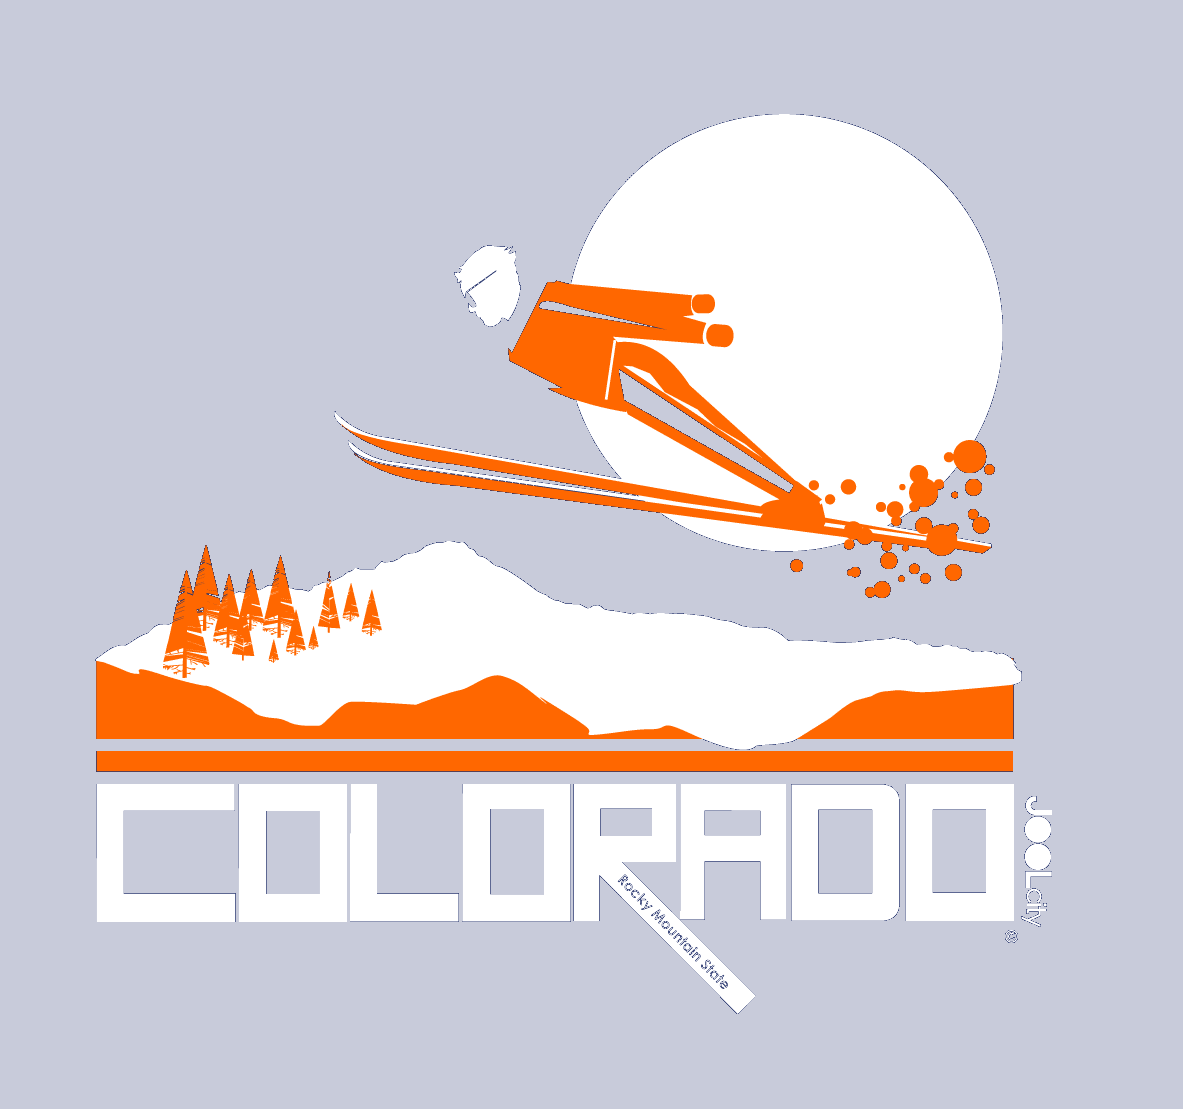 Colorado Flying High Short-Sleeve Men's T-Shirt T-Shirt  designed by JOOLcity